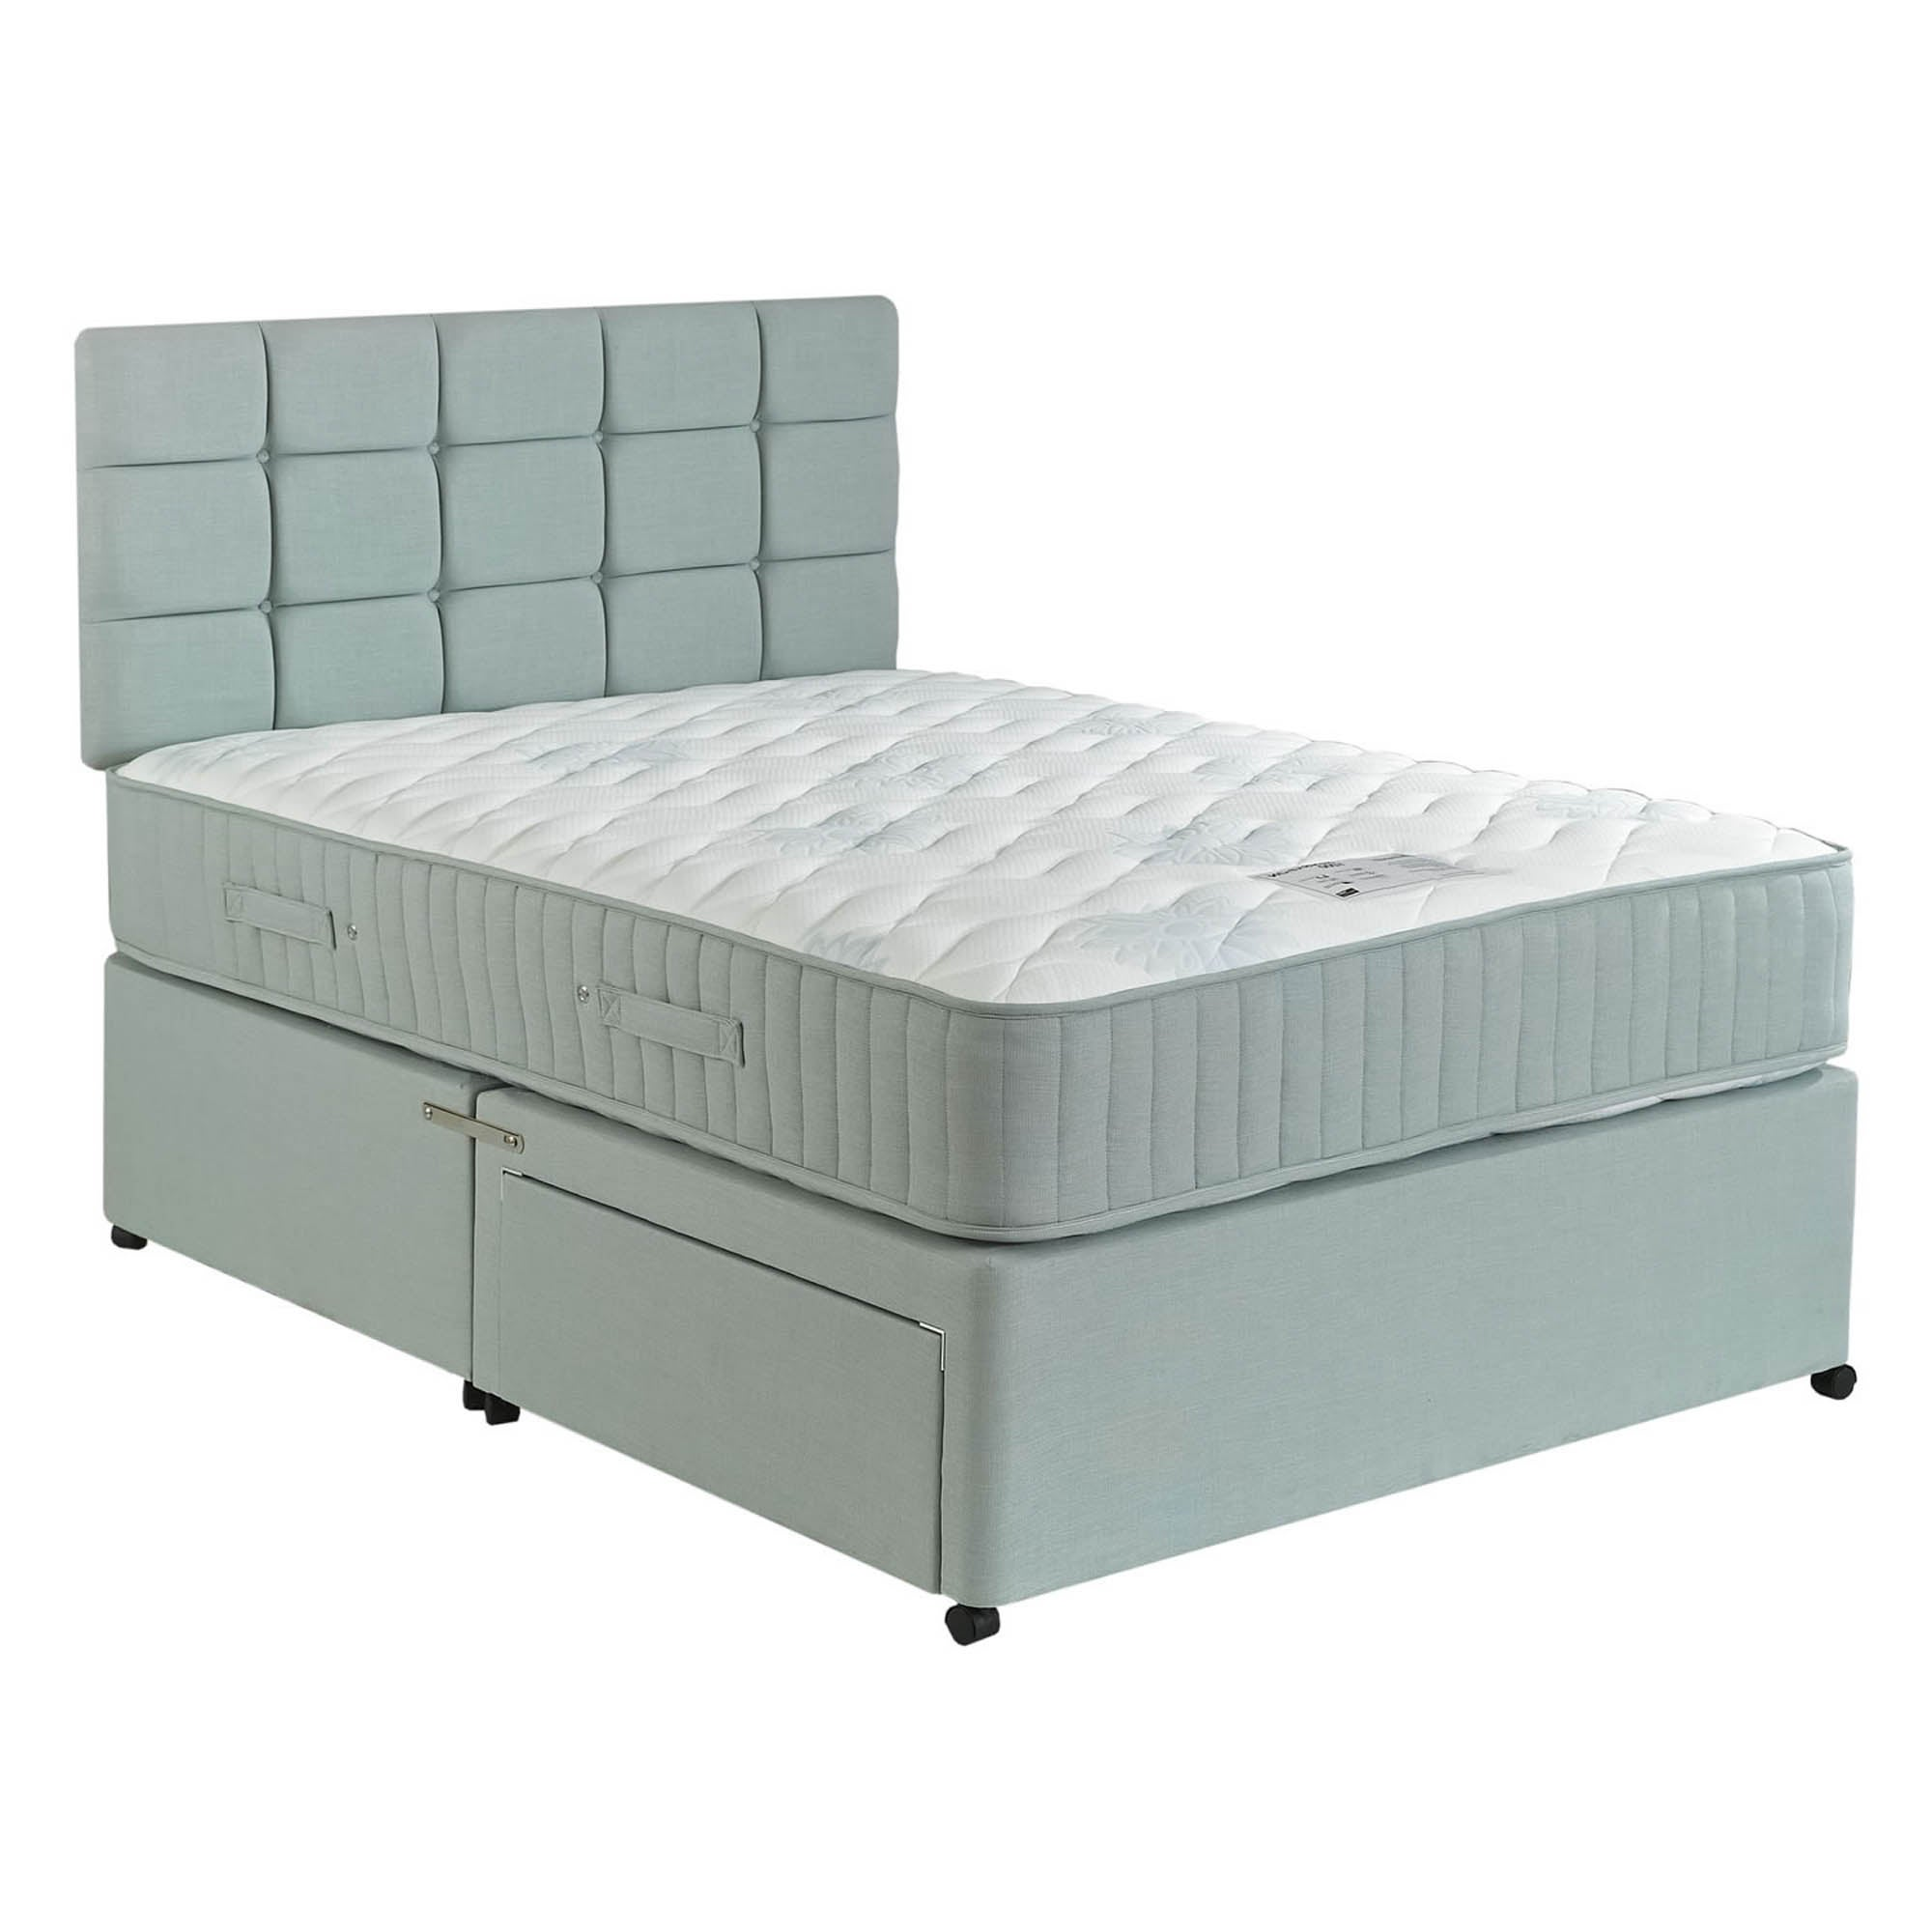 Sensation 1200 Mattress and Divan Collection